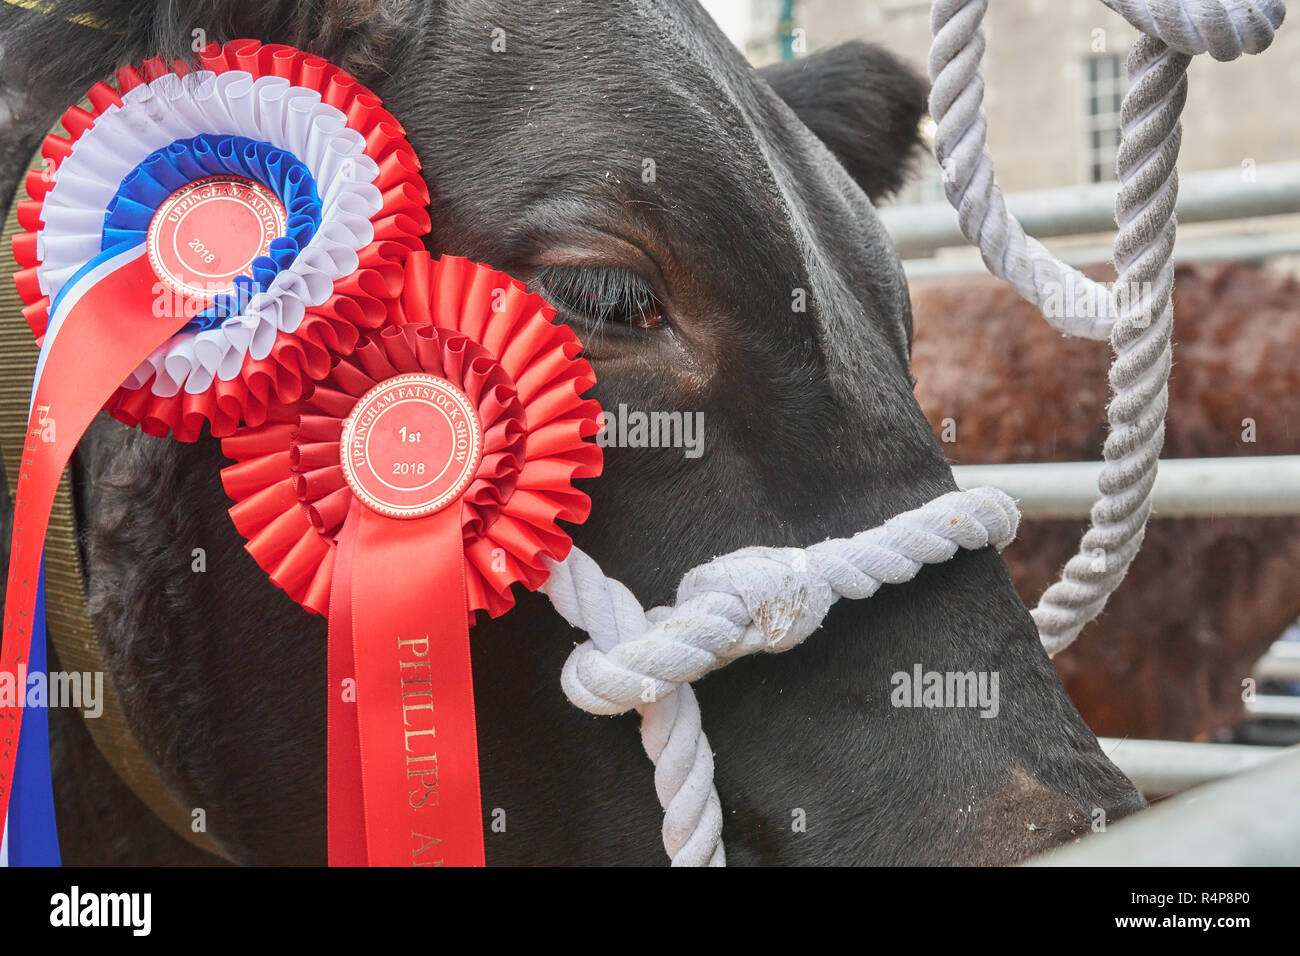 Uppingham, Rutland, UK. 28th November 2018. Prize winner at the annual christmastime fatstock competition of primped and preened pigs, sheep and cattle, in the market square at Uppingham, Rutland, England on Wednesday 28th November 2018 Credit: Michael Foley/Alamy Live News - Stock Image